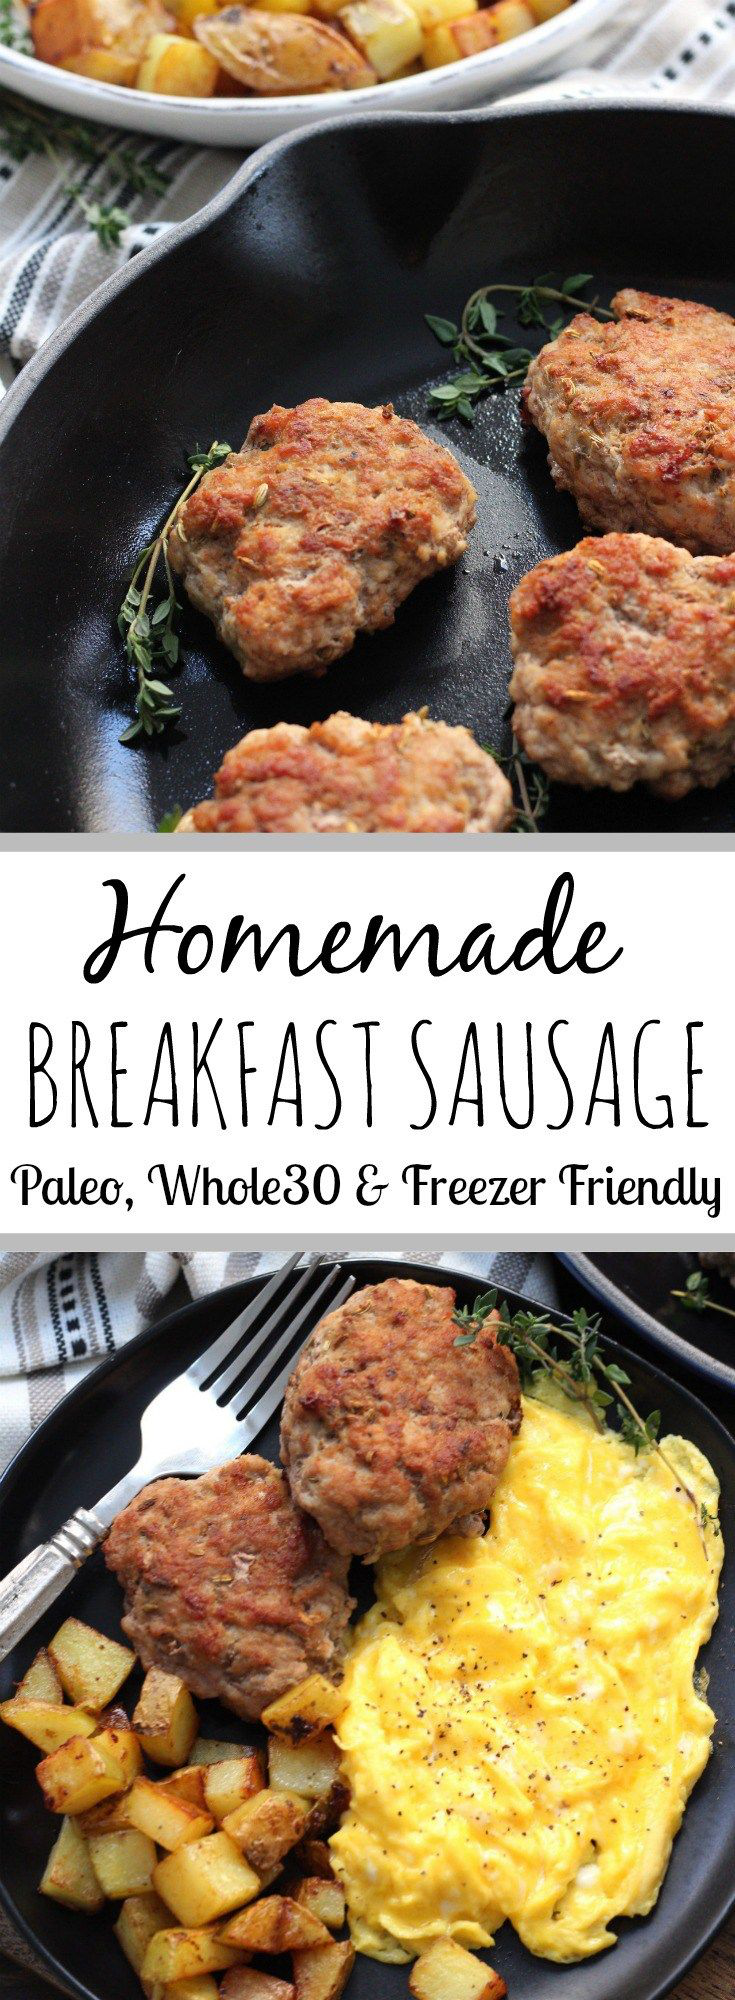 homemade breakfast sausage paleo lunch meat | Homemade ...